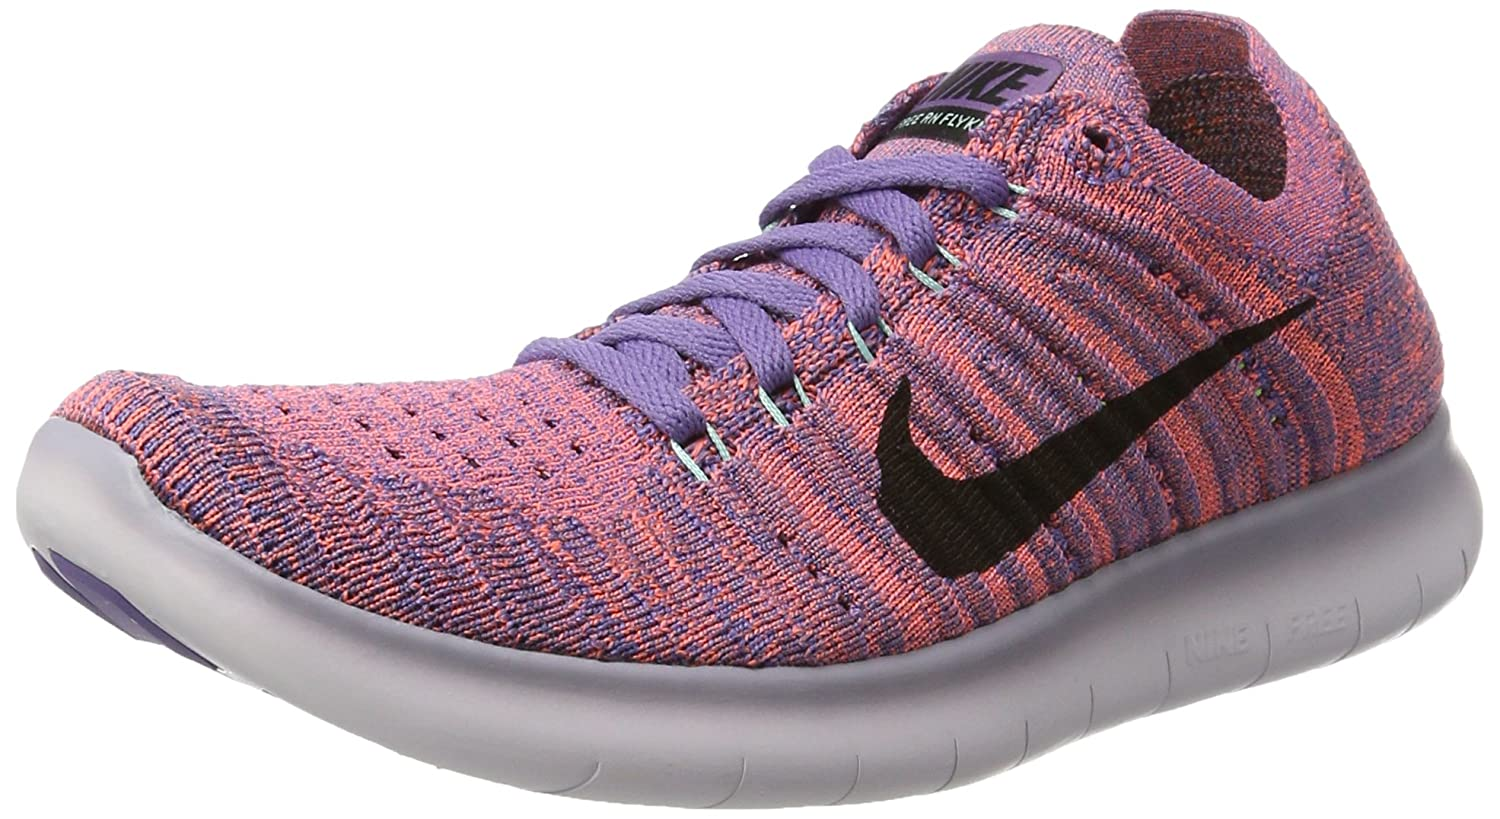 NIKE Women's Free RN Flyknit 2017 Running Shoe B01N5XFO94 6.5 B(M) US|Purple Earth/Black